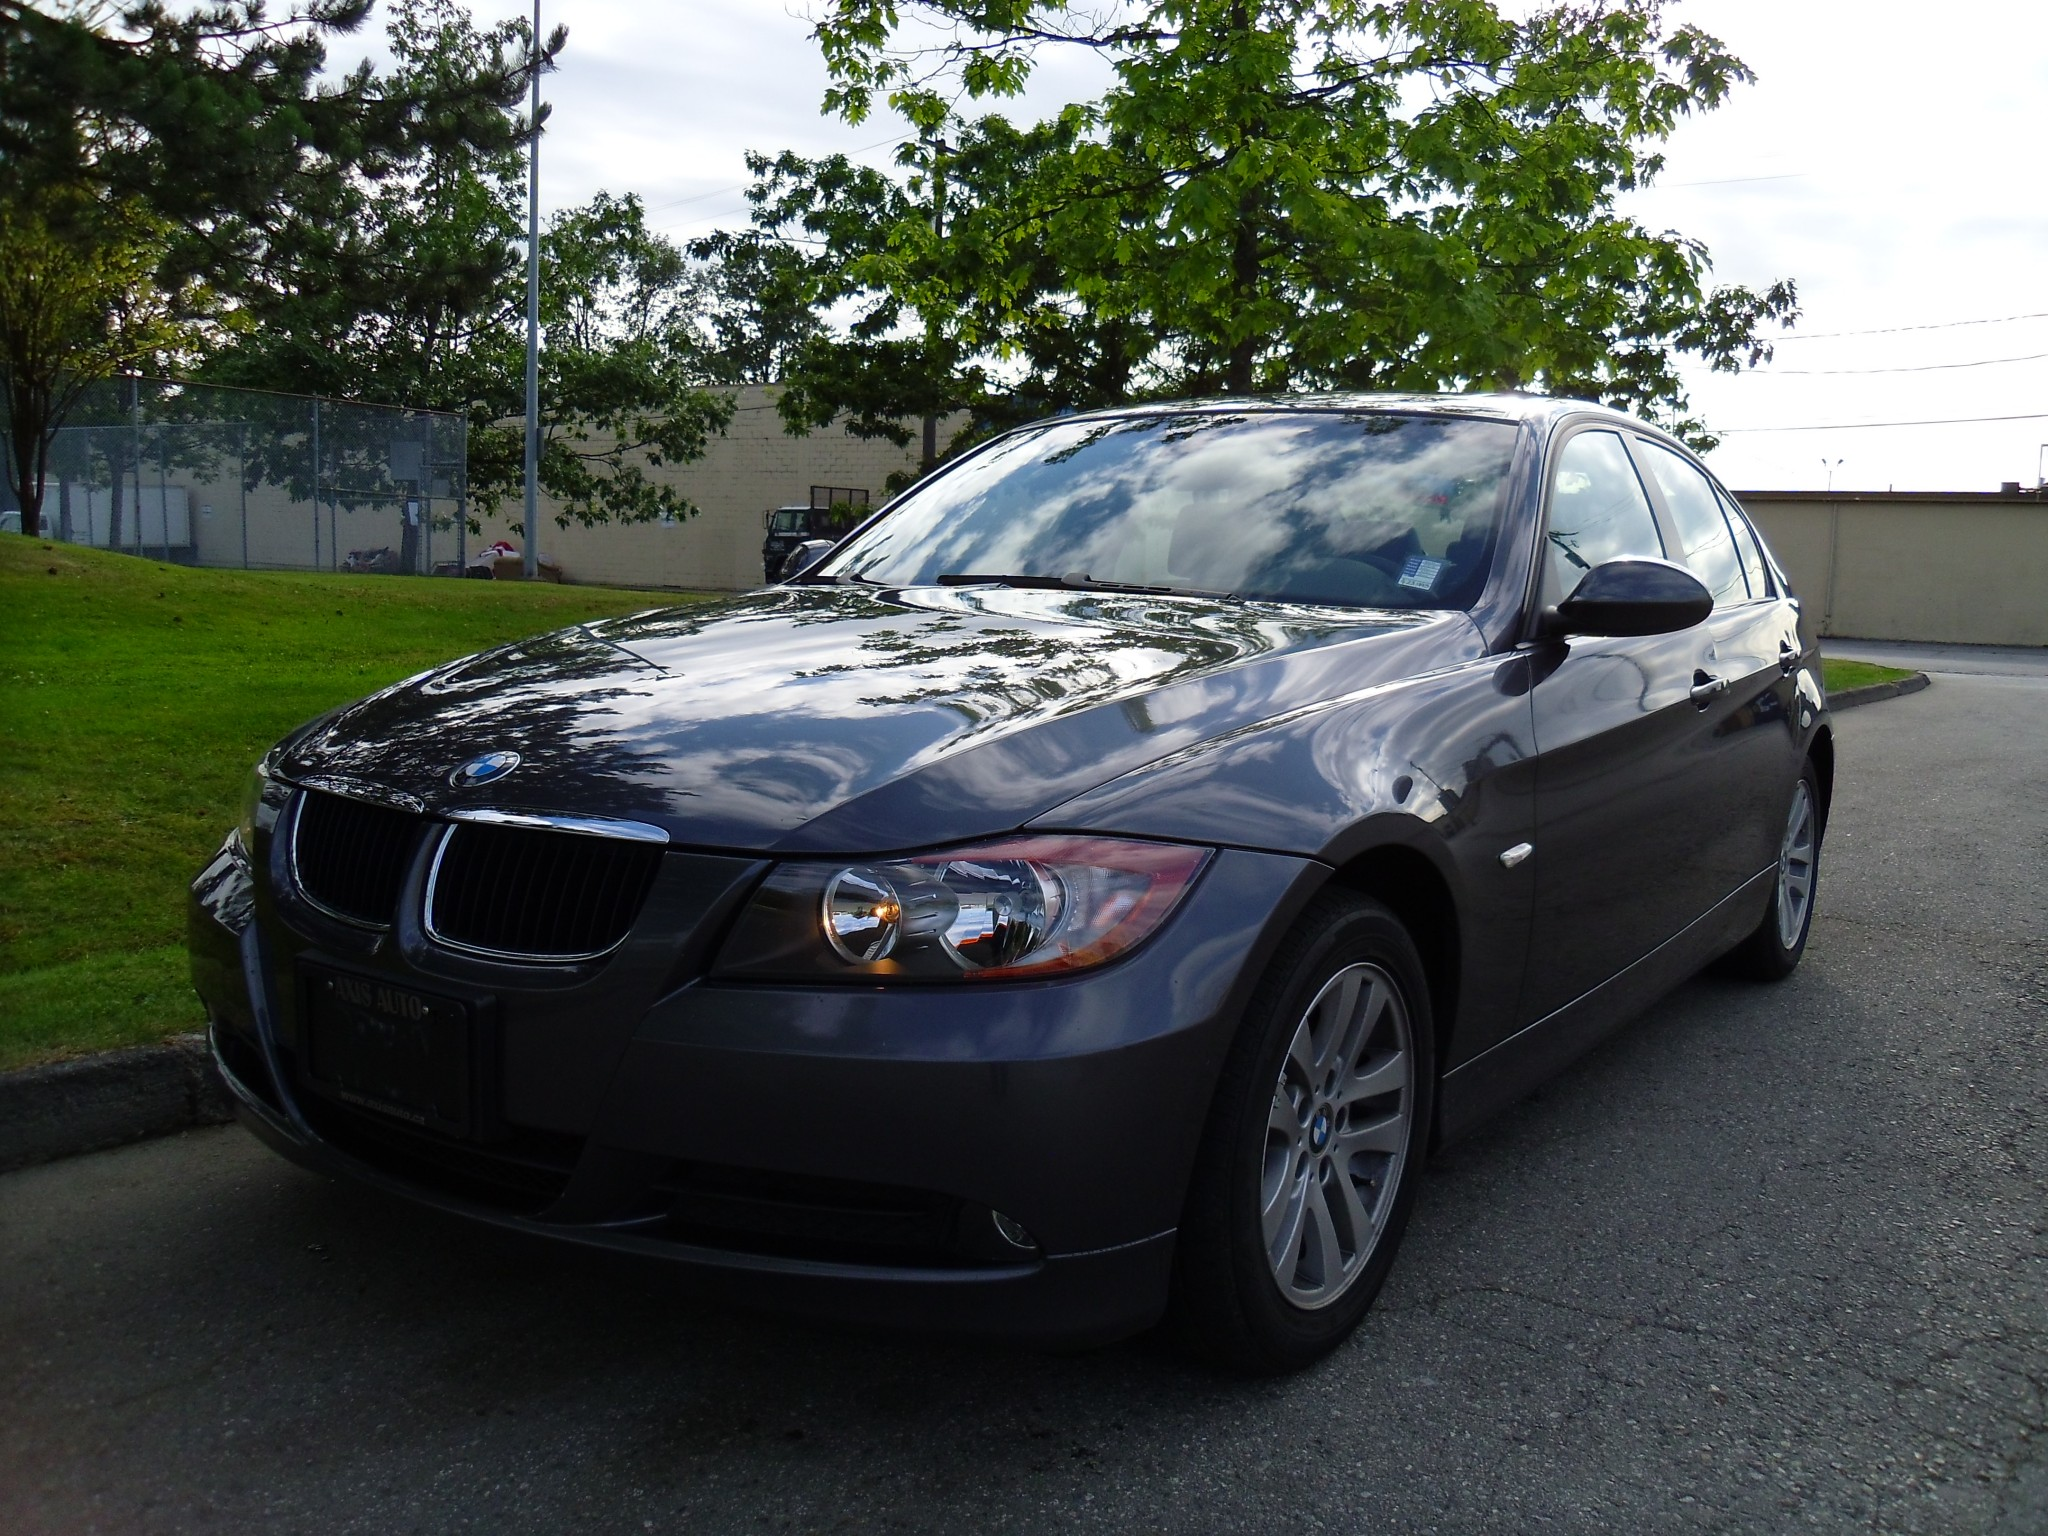 2008 bmw 323i automatic ca e90 related infomation. Black Bedroom Furniture Sets. Home Design Ideas